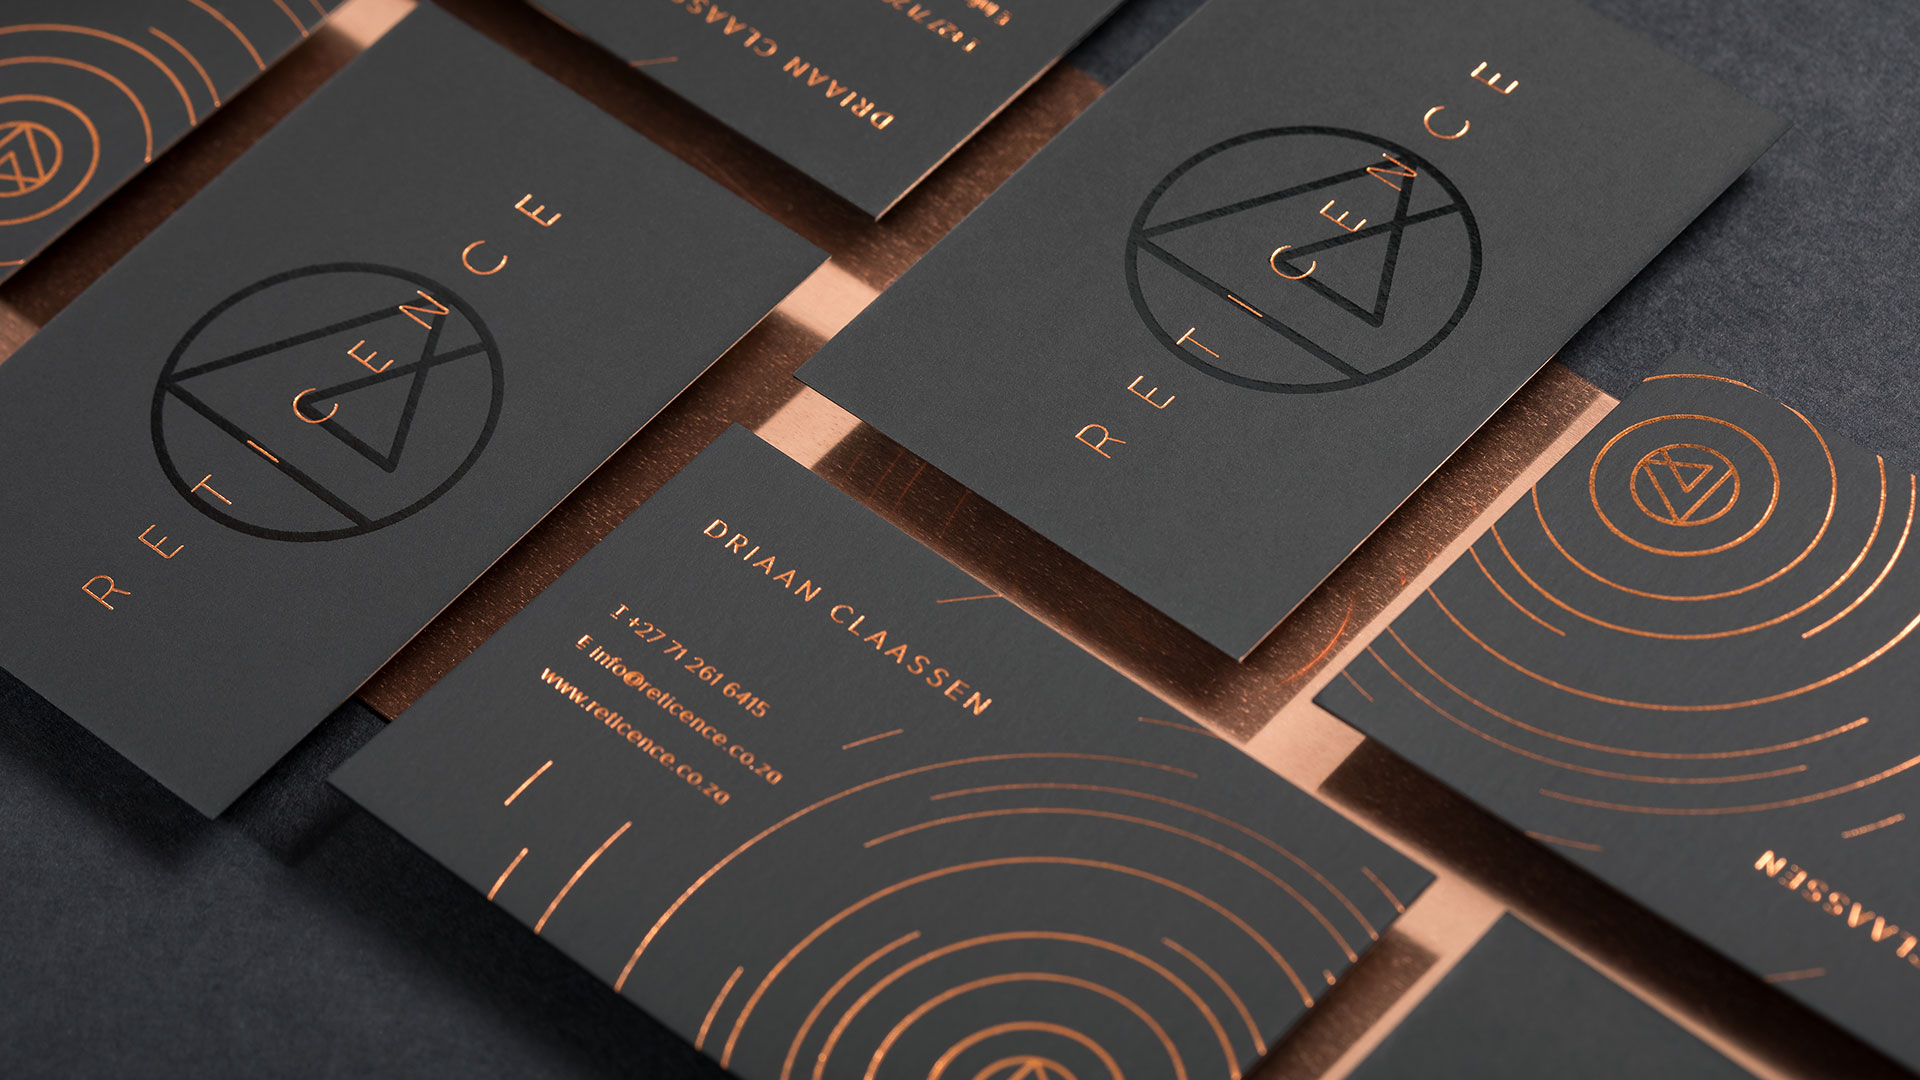 Reticence Stationery - PaperSpecs